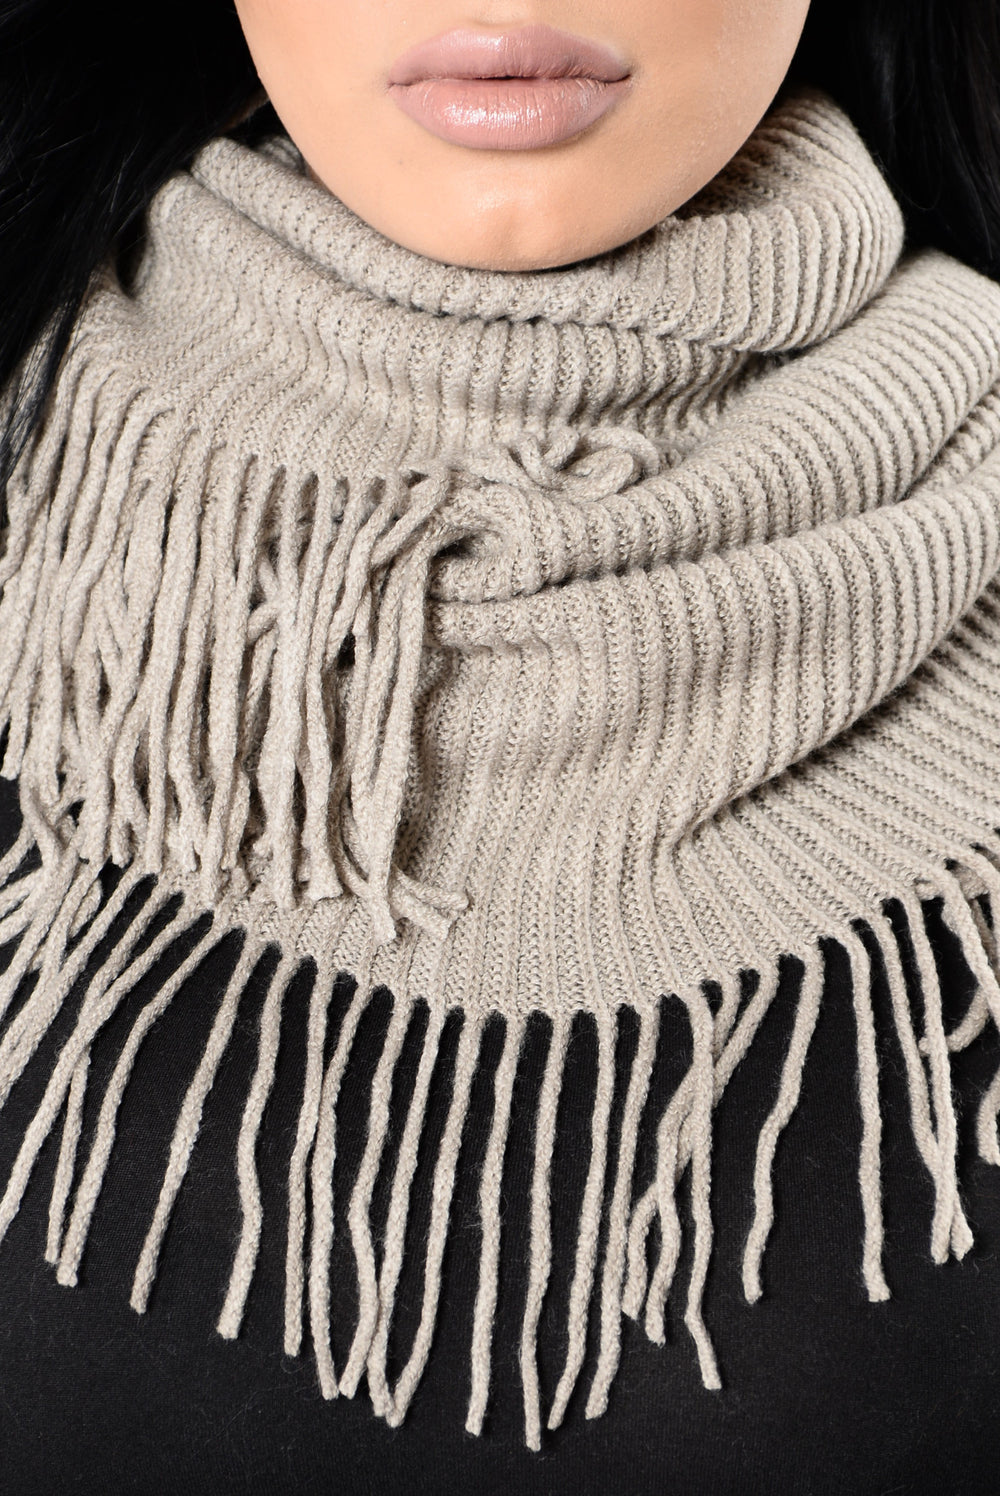 Wrapped All Up Infinity Scarf - Khaki